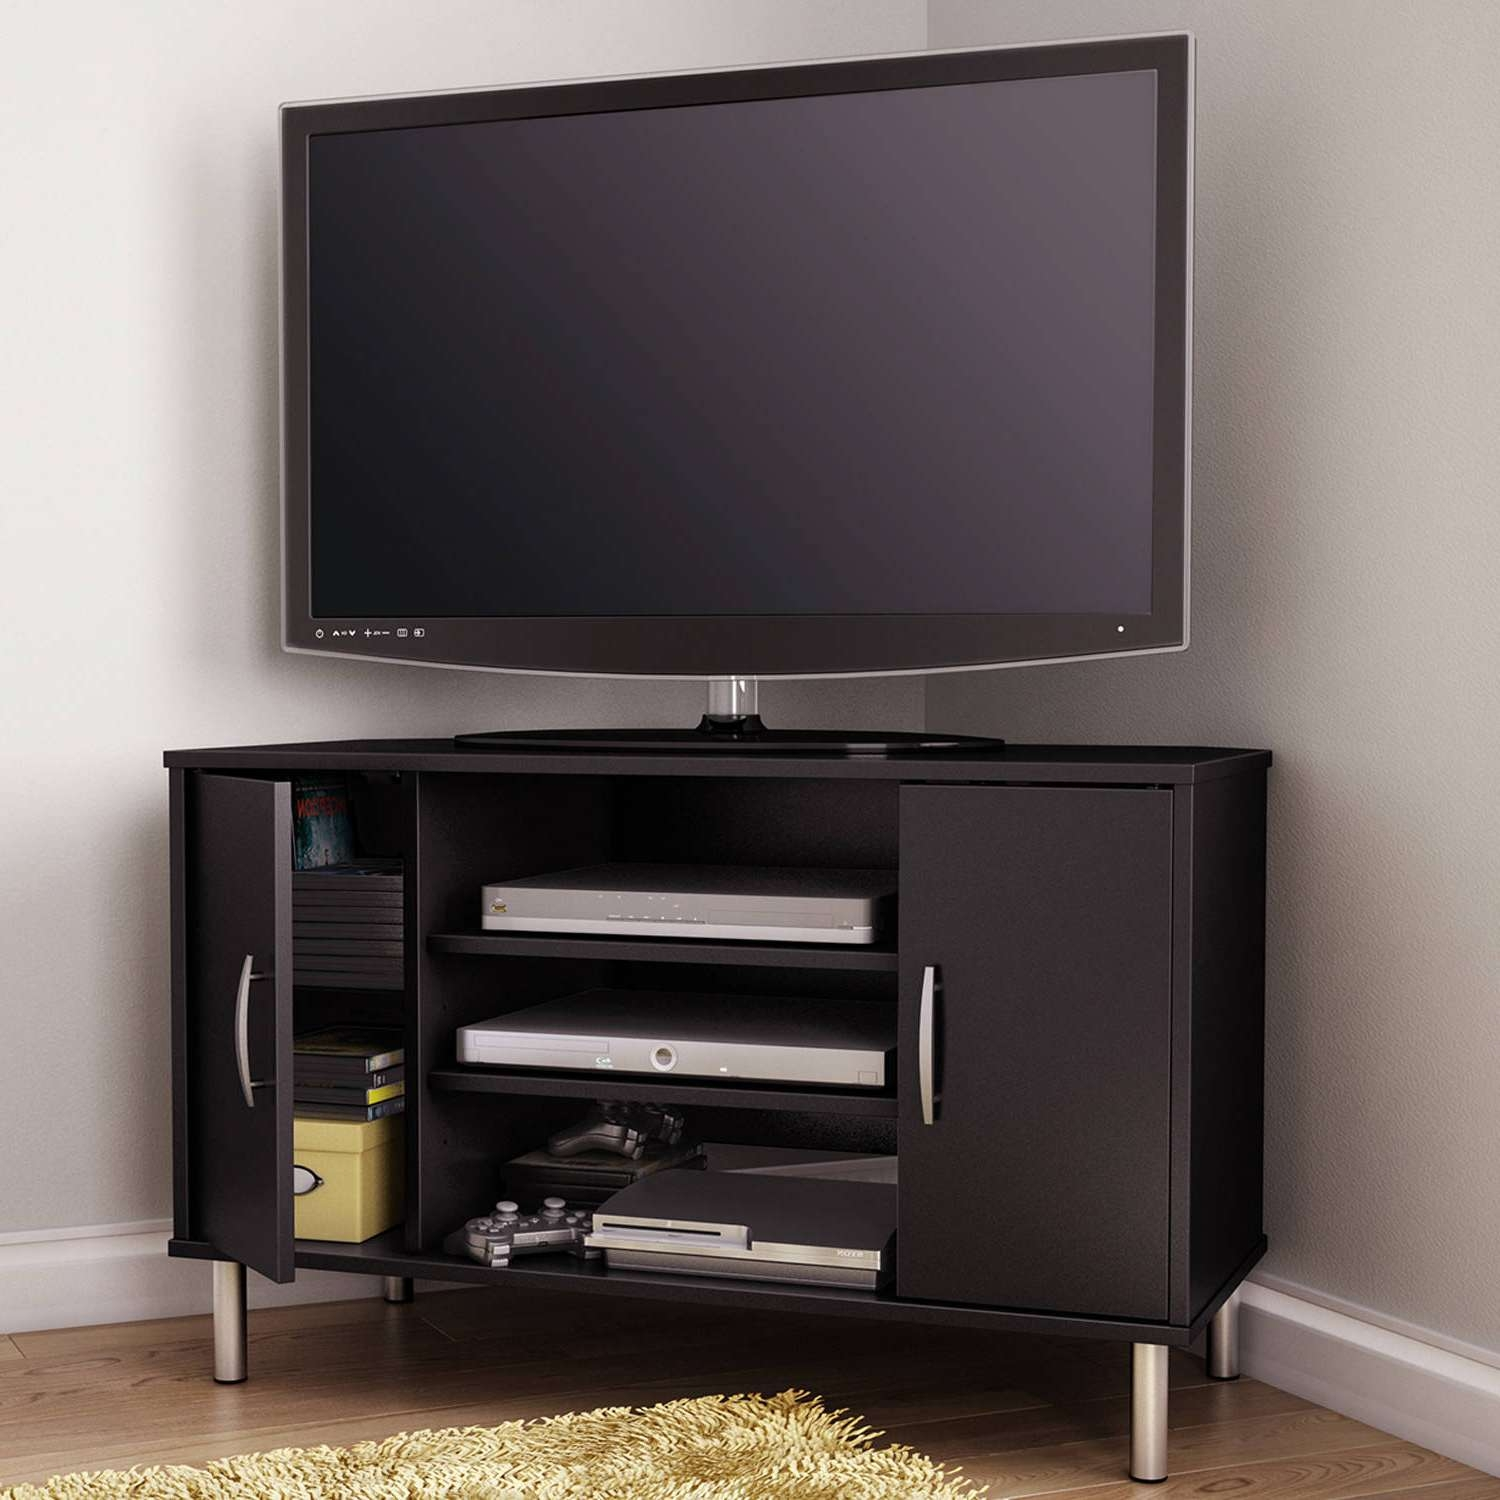 Corner Tv Stands 48 Inches Tags : 50 Unforgettable Corner Tv Stand Regarding Corner Tv Stands 40 Inch (View 1 of 20)